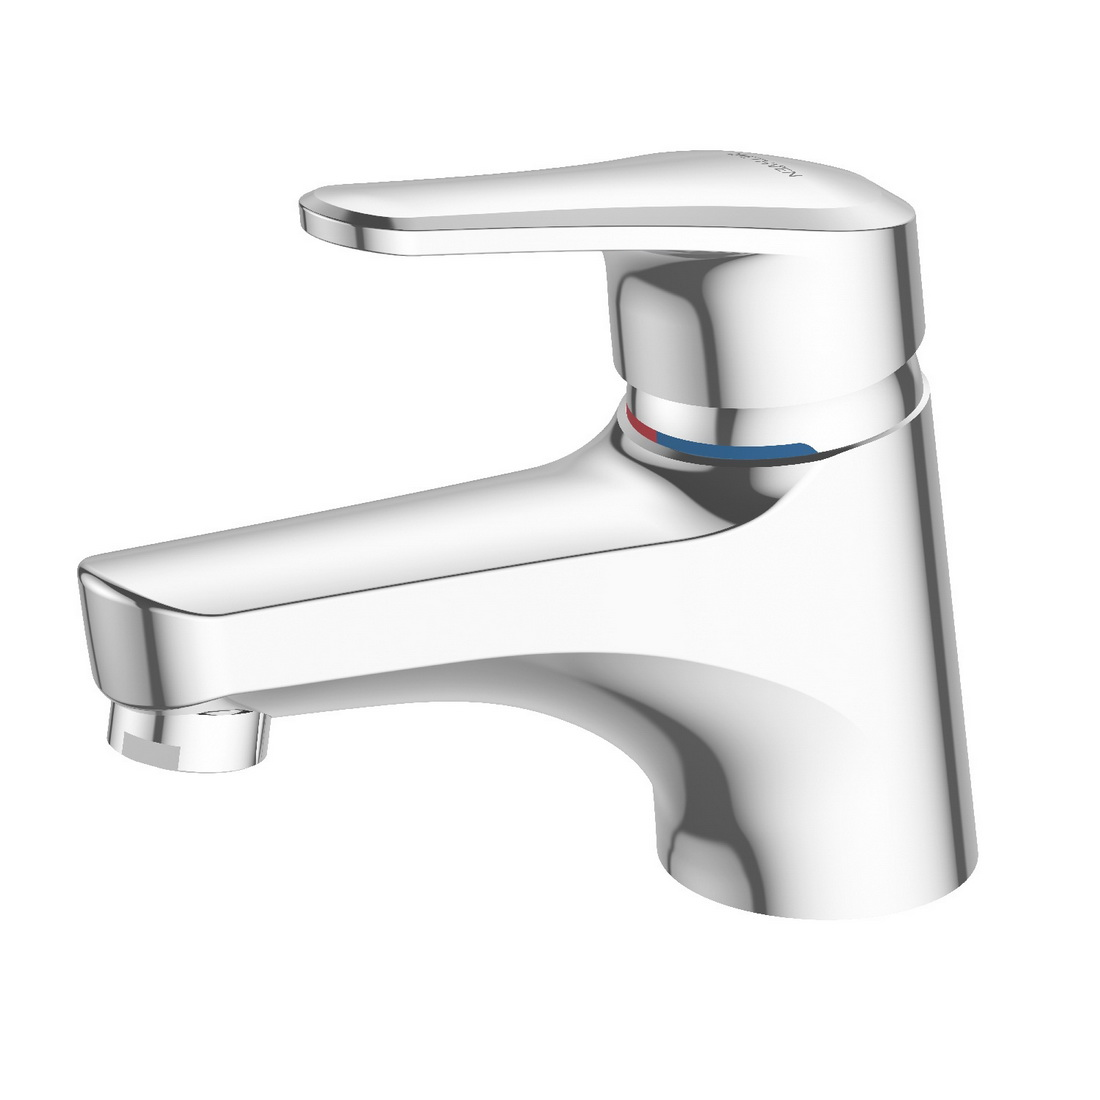 Futura Basin Mixer Chrome